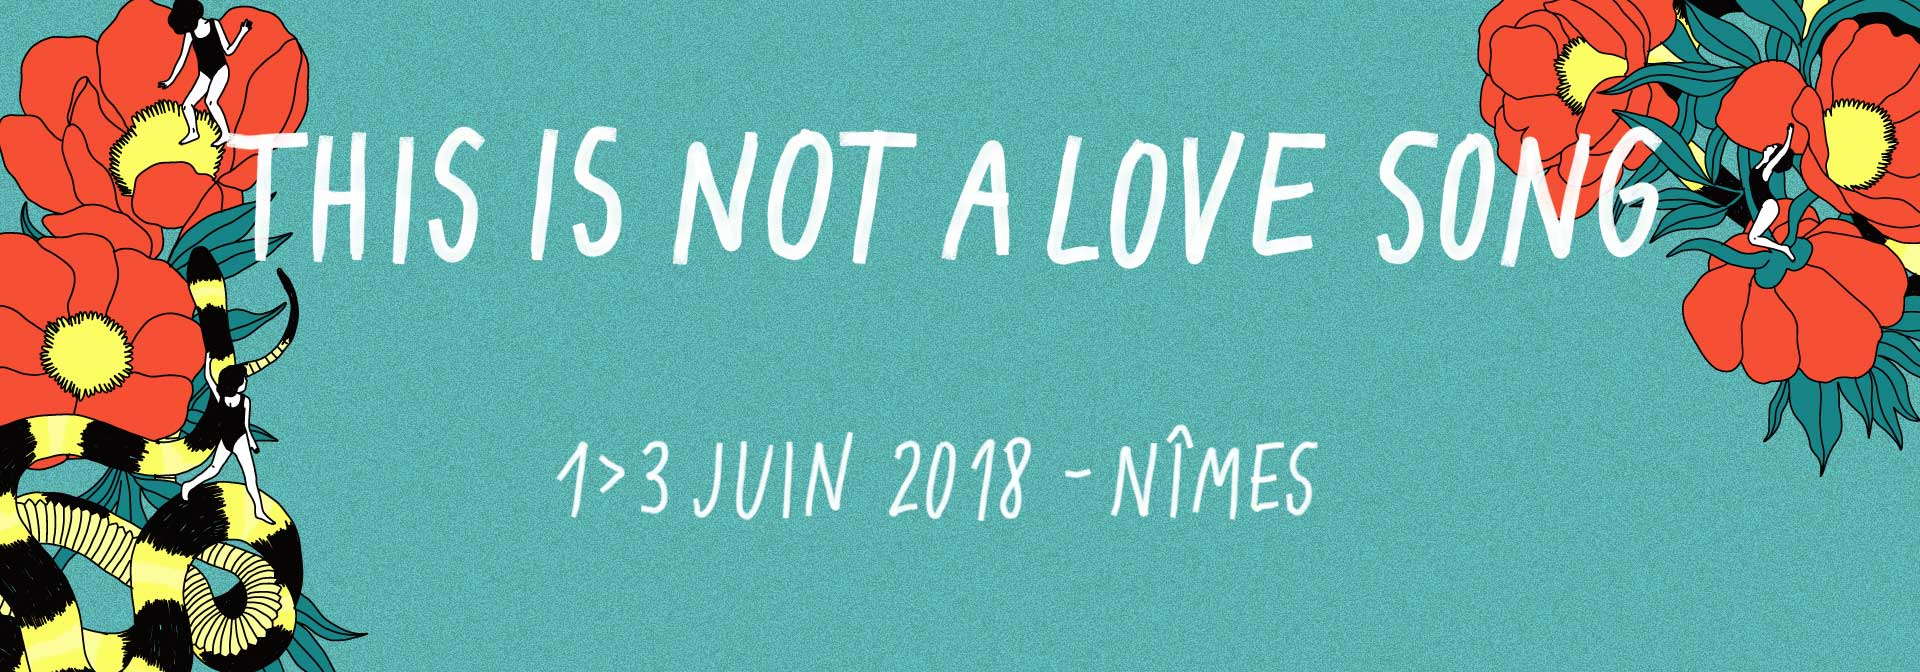 THIS IS NOT A LOVE SONG 2018 : Les premiers noms